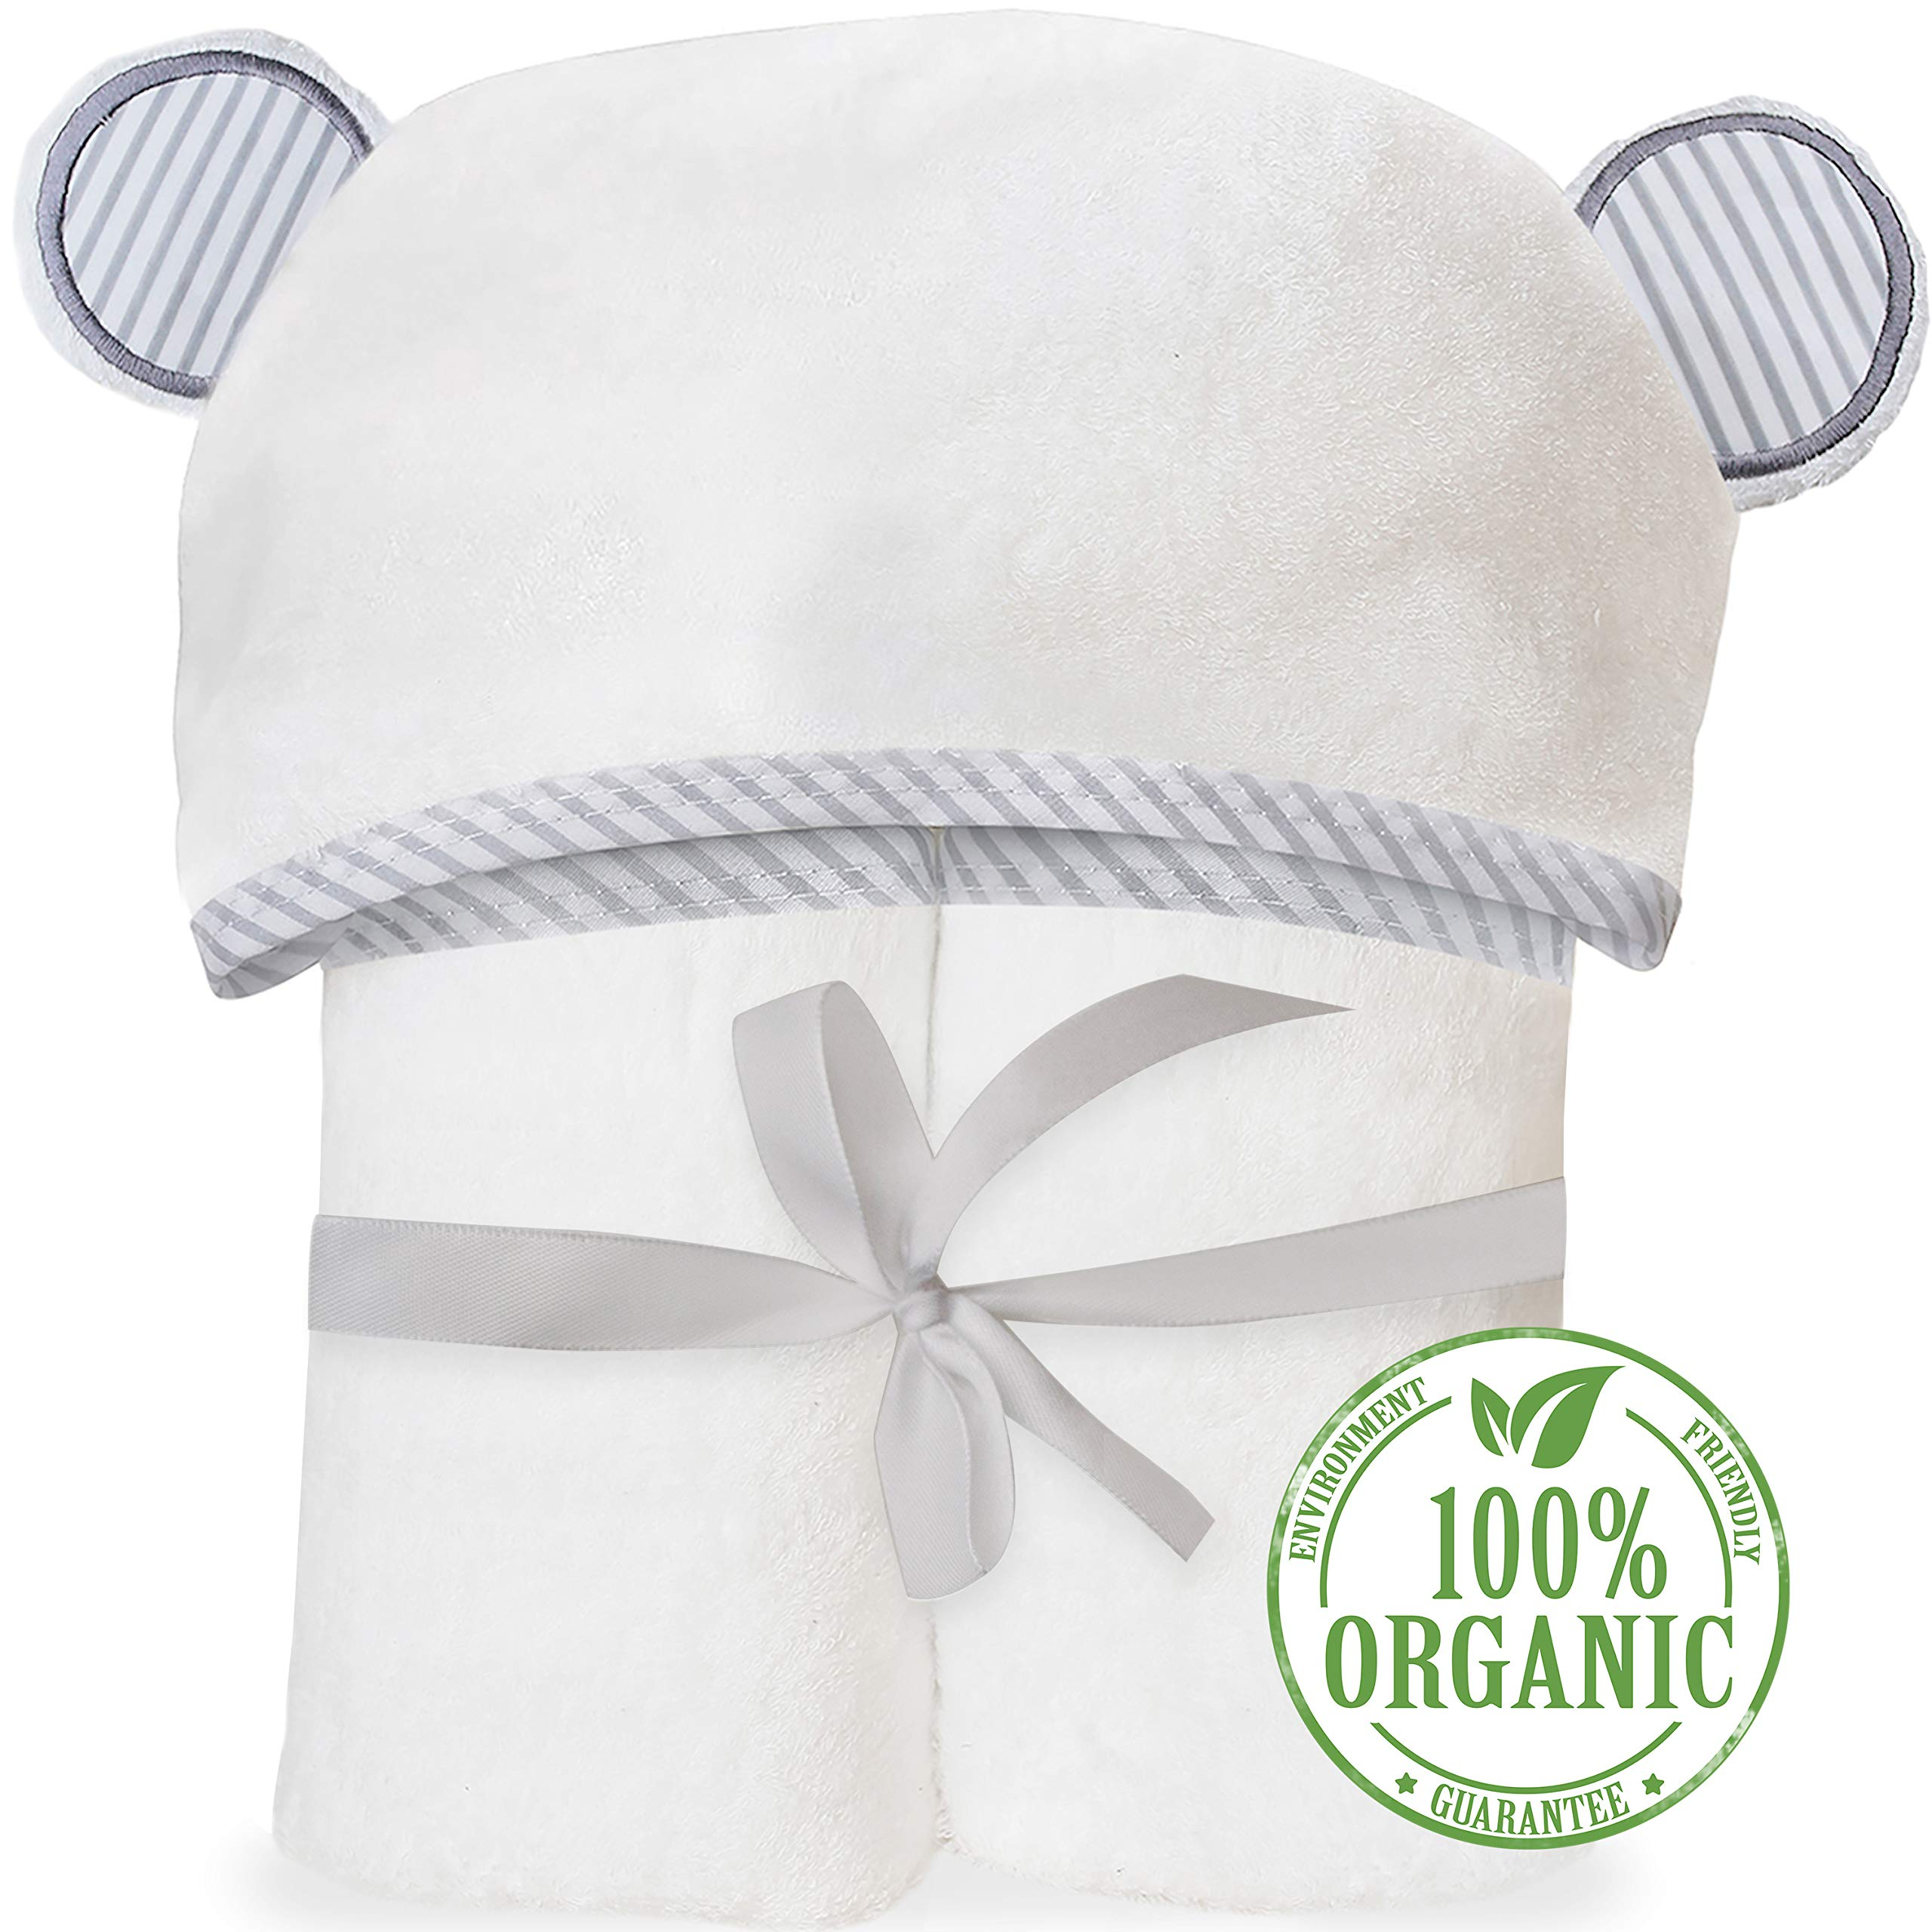 Organic Bamboo Hooded Baby Towel - Soft, Hooded Bath Towels with Ears for Babies, Toddlers - Large Baby Towel Perfect Baby Shower Gift for Boys and Girls by San Francisco Baby by San Francisco Baby